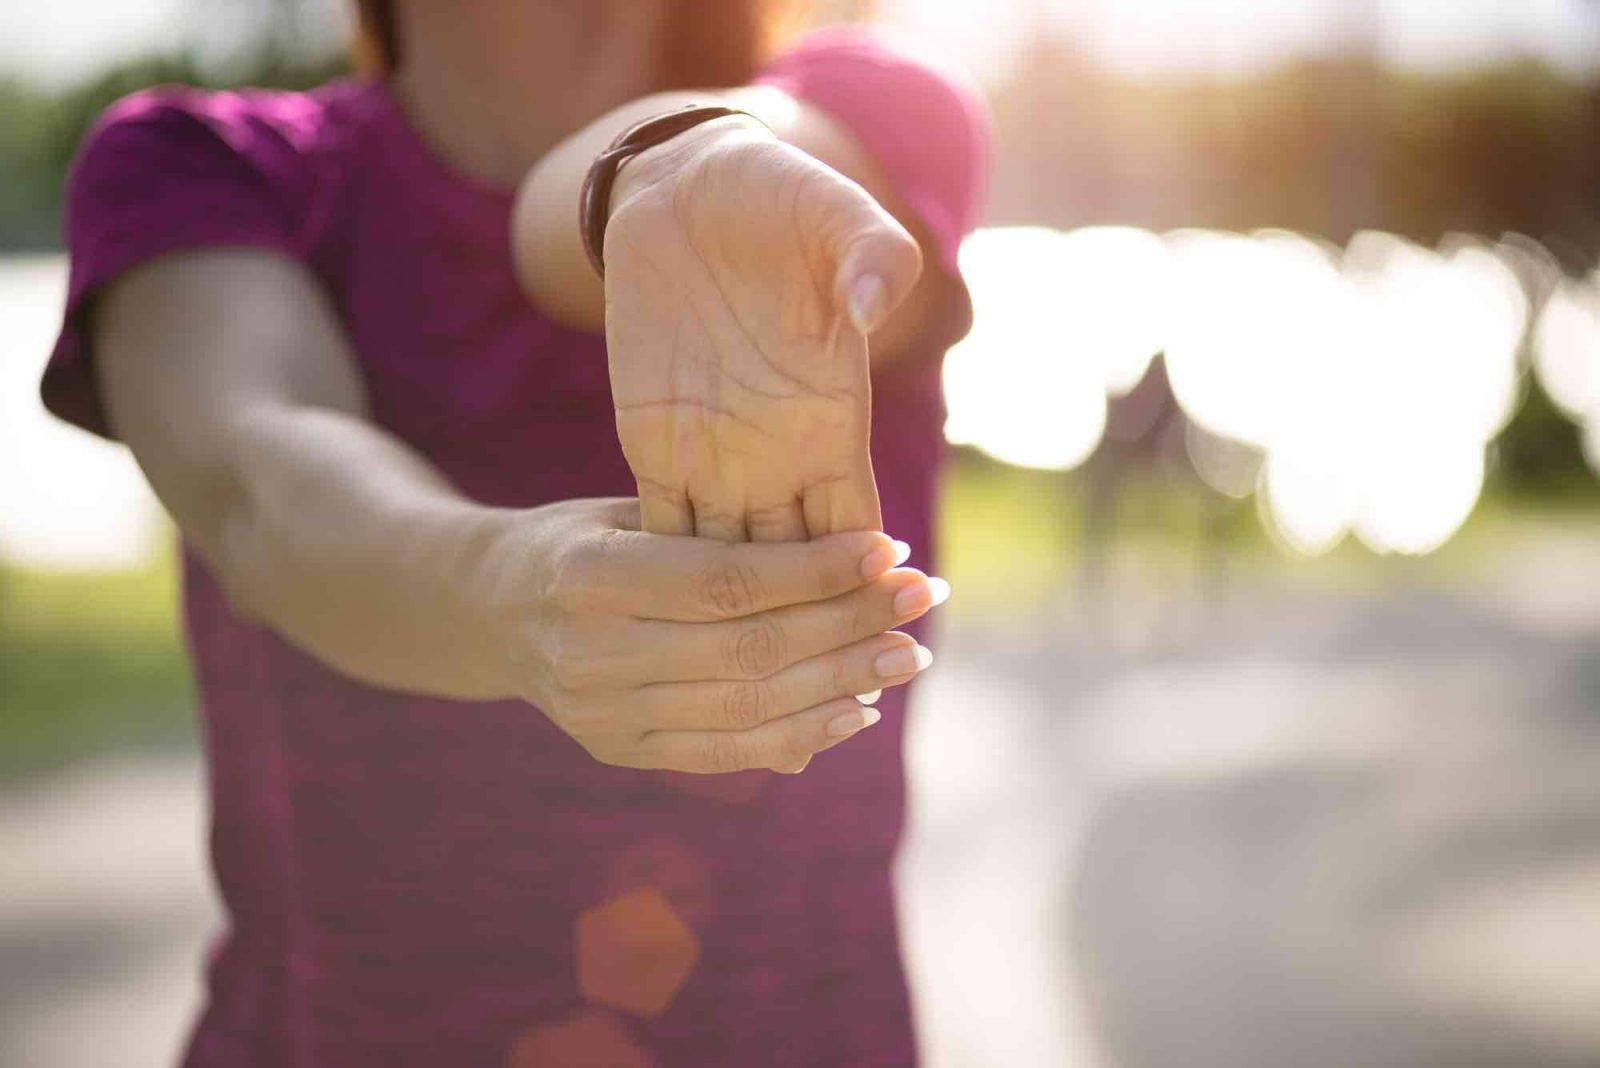 15 Arthritis Hand Exercises to Reduce Joint Pain